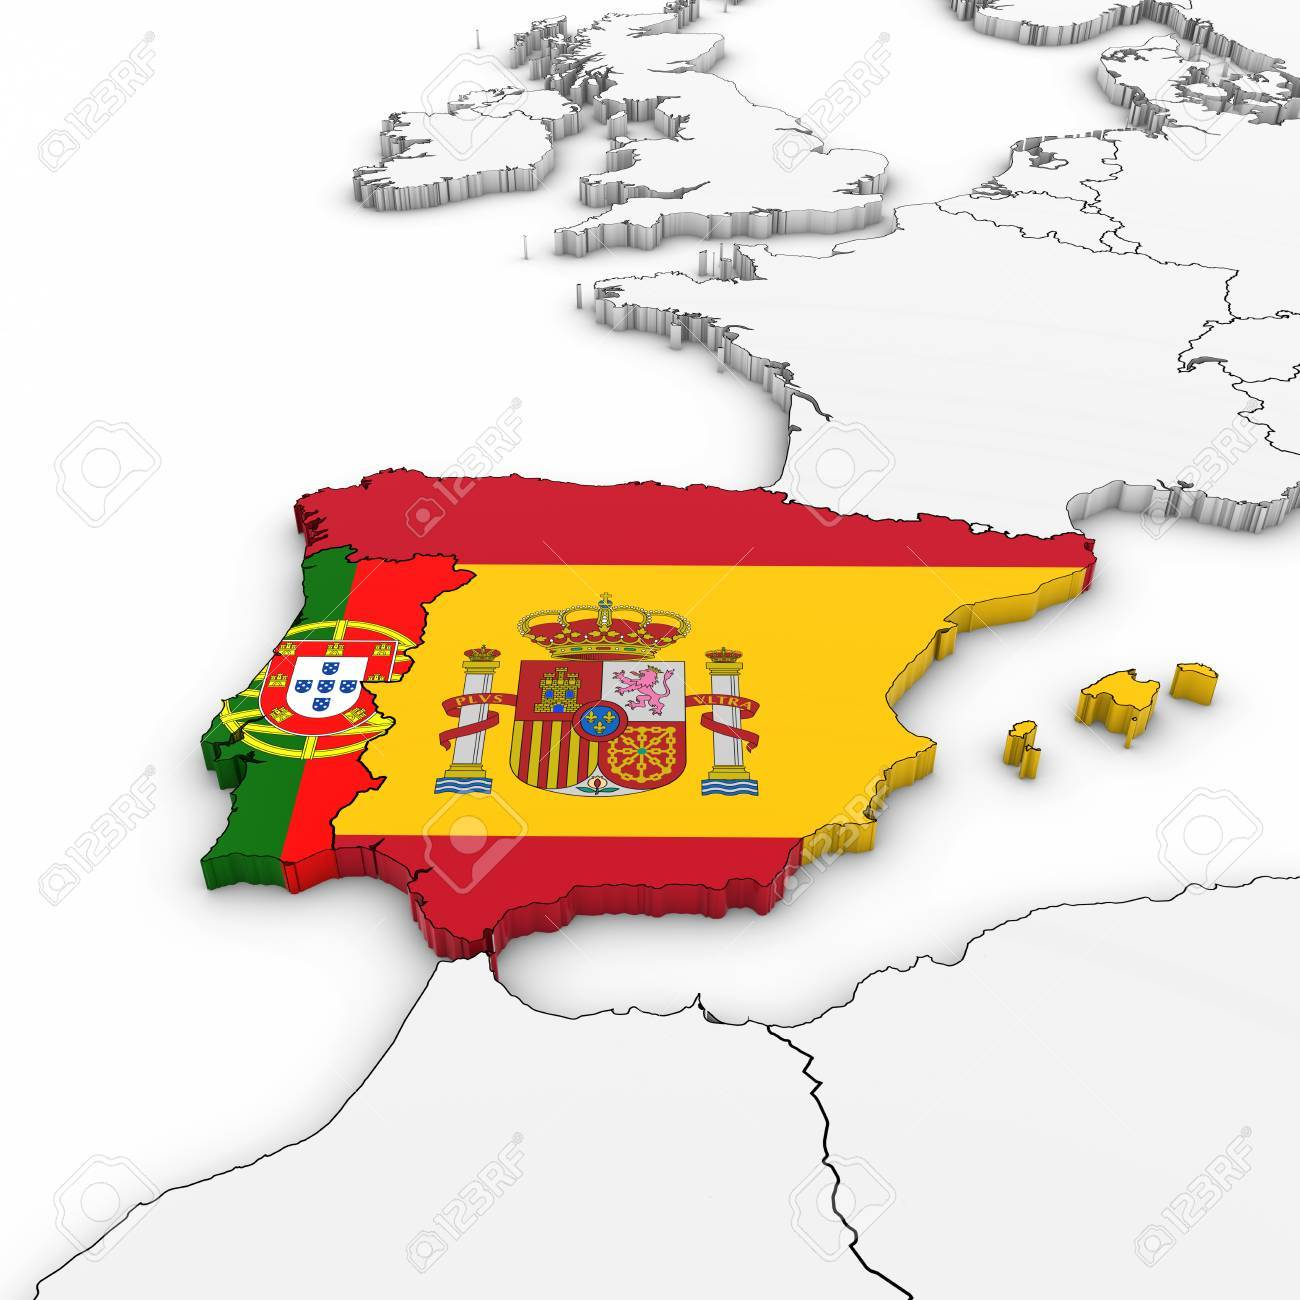 Map Of Portugal And Spain.3d Map Of Spain And Portugal With National Flags On White Background